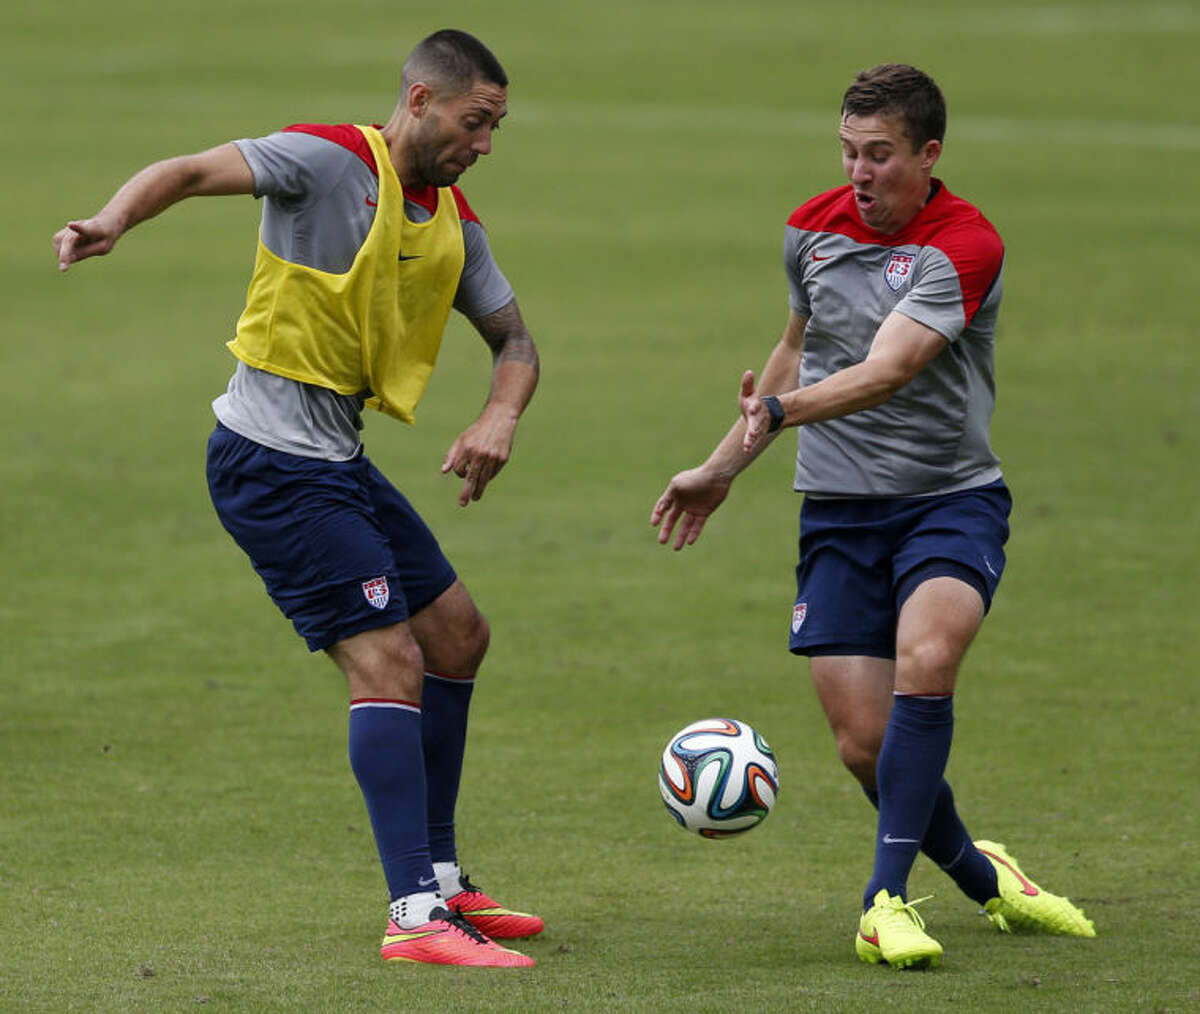 United States' Clint Dempsey, left, and Matt Besler compete for the ball during a training session at the Sao Paulo FC training center in Sao Paulo, Brazil, Wednesday, June 11, 2014. The U.S. will play in group G of the 2014 soccer World Cup. (AP Photo/Julio Cortez)